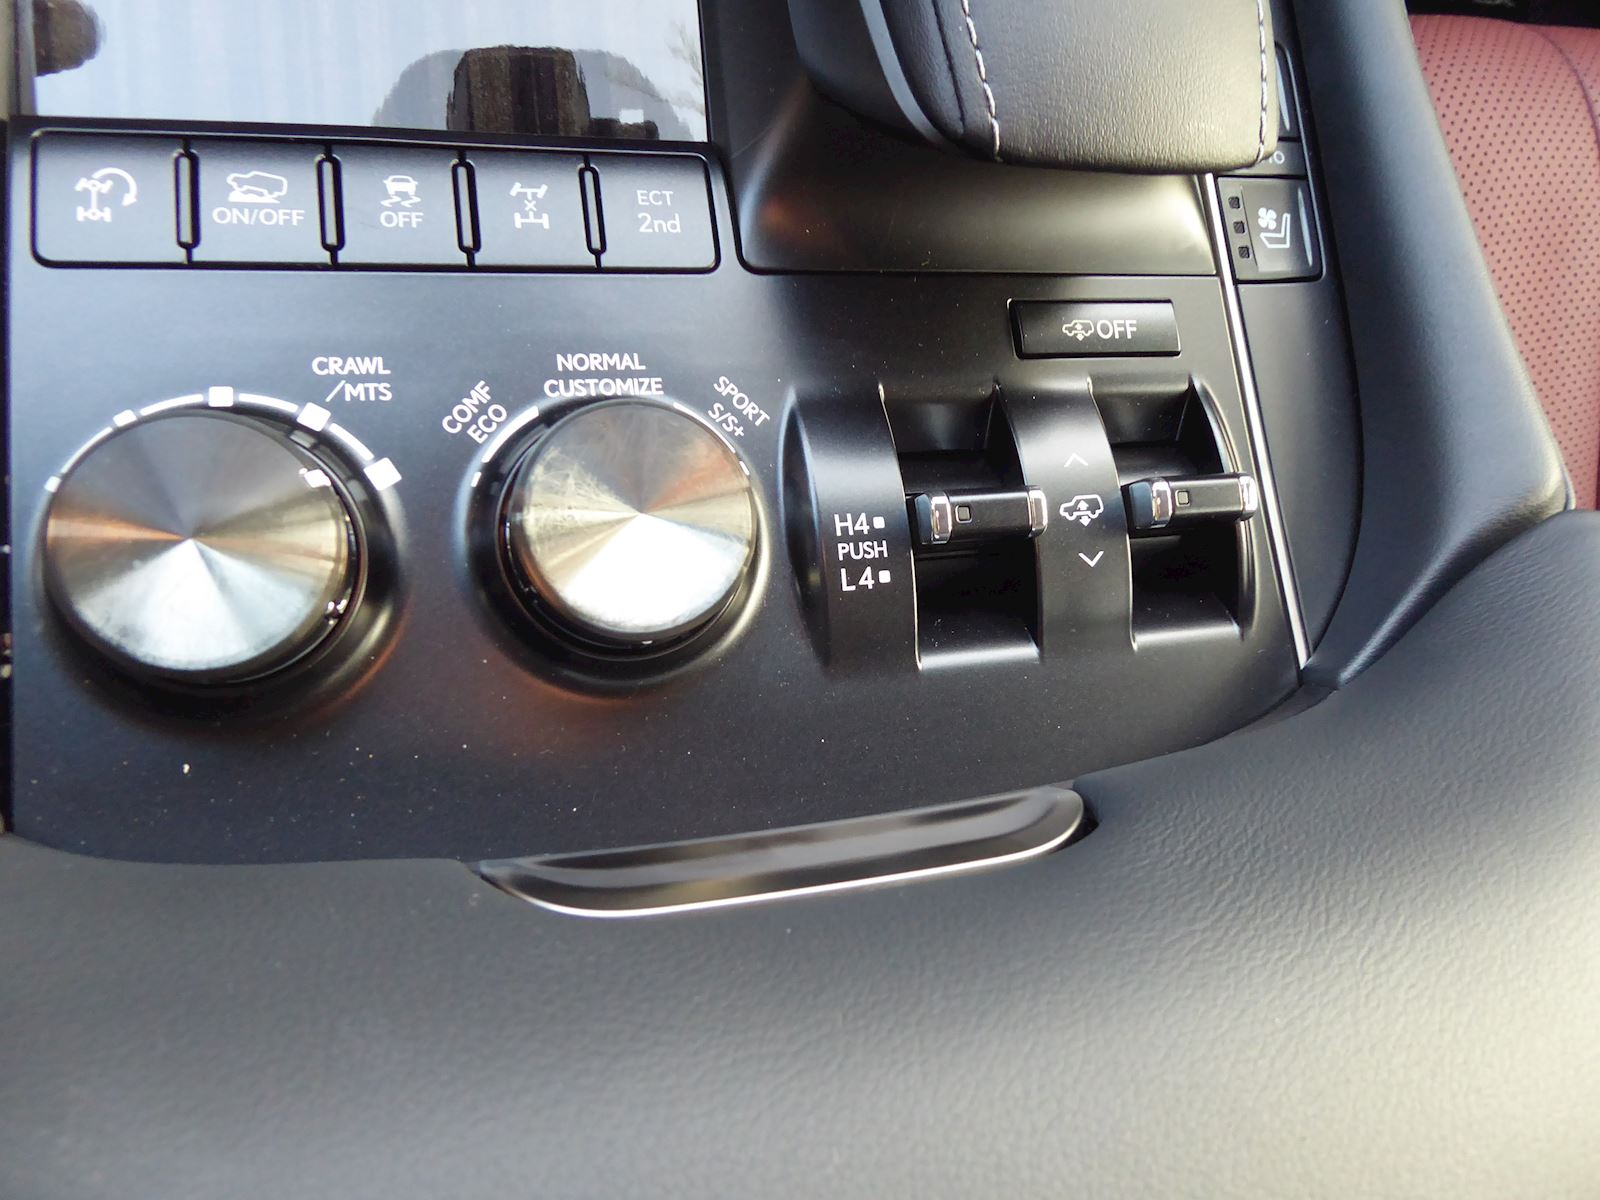 2020 Lexus LX 570 Drive Mode Controls